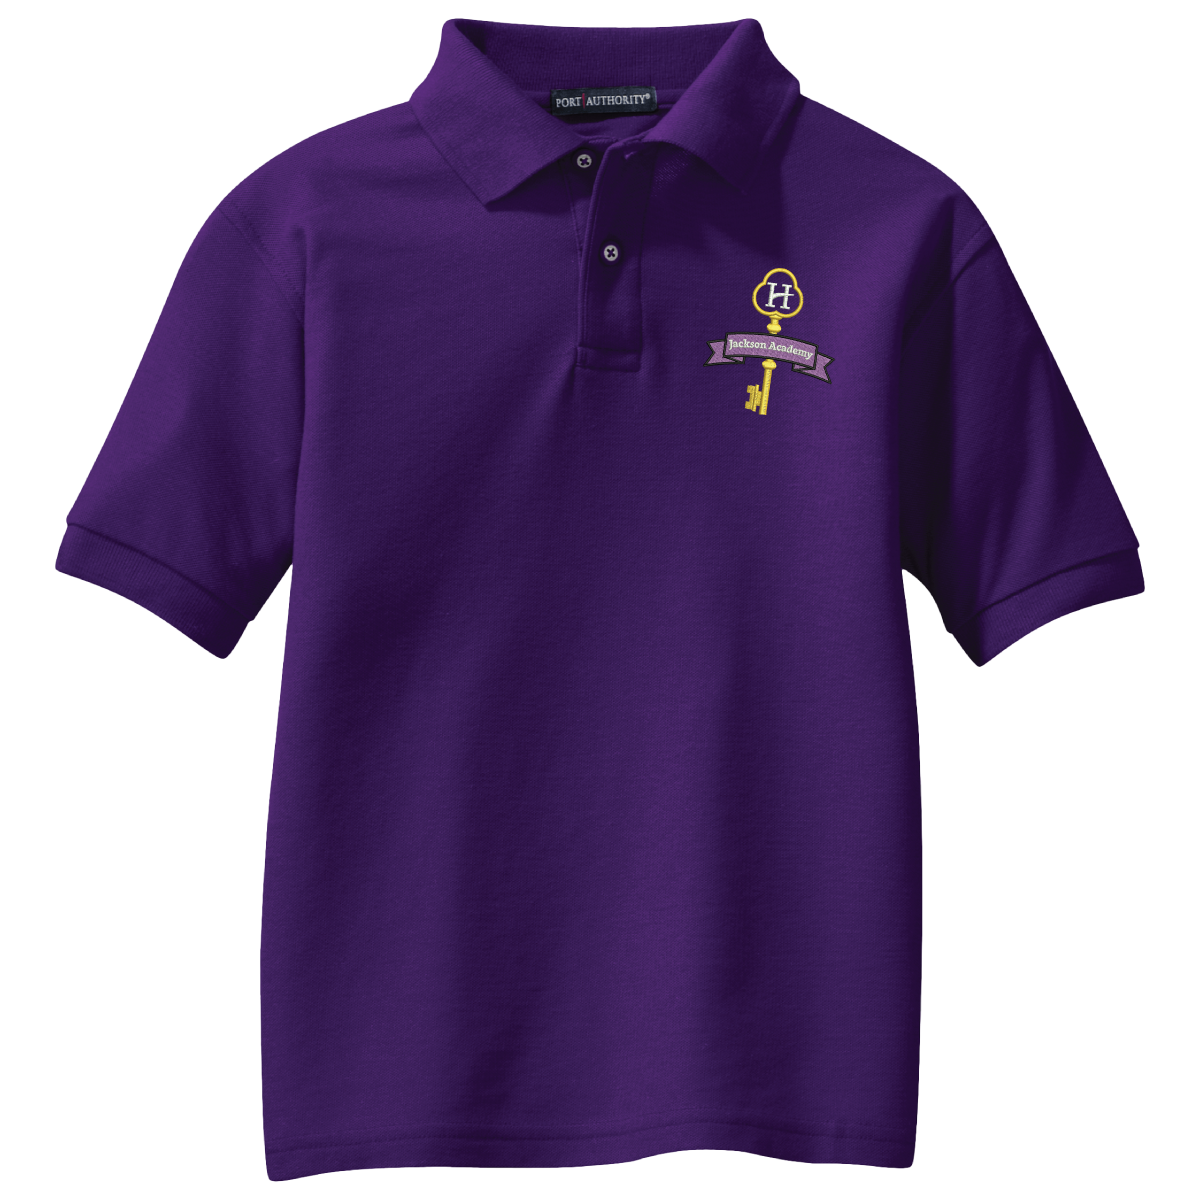 Jackson Academy (Hillcrest) Port Authority® Silk Touch™ Polo - Purple